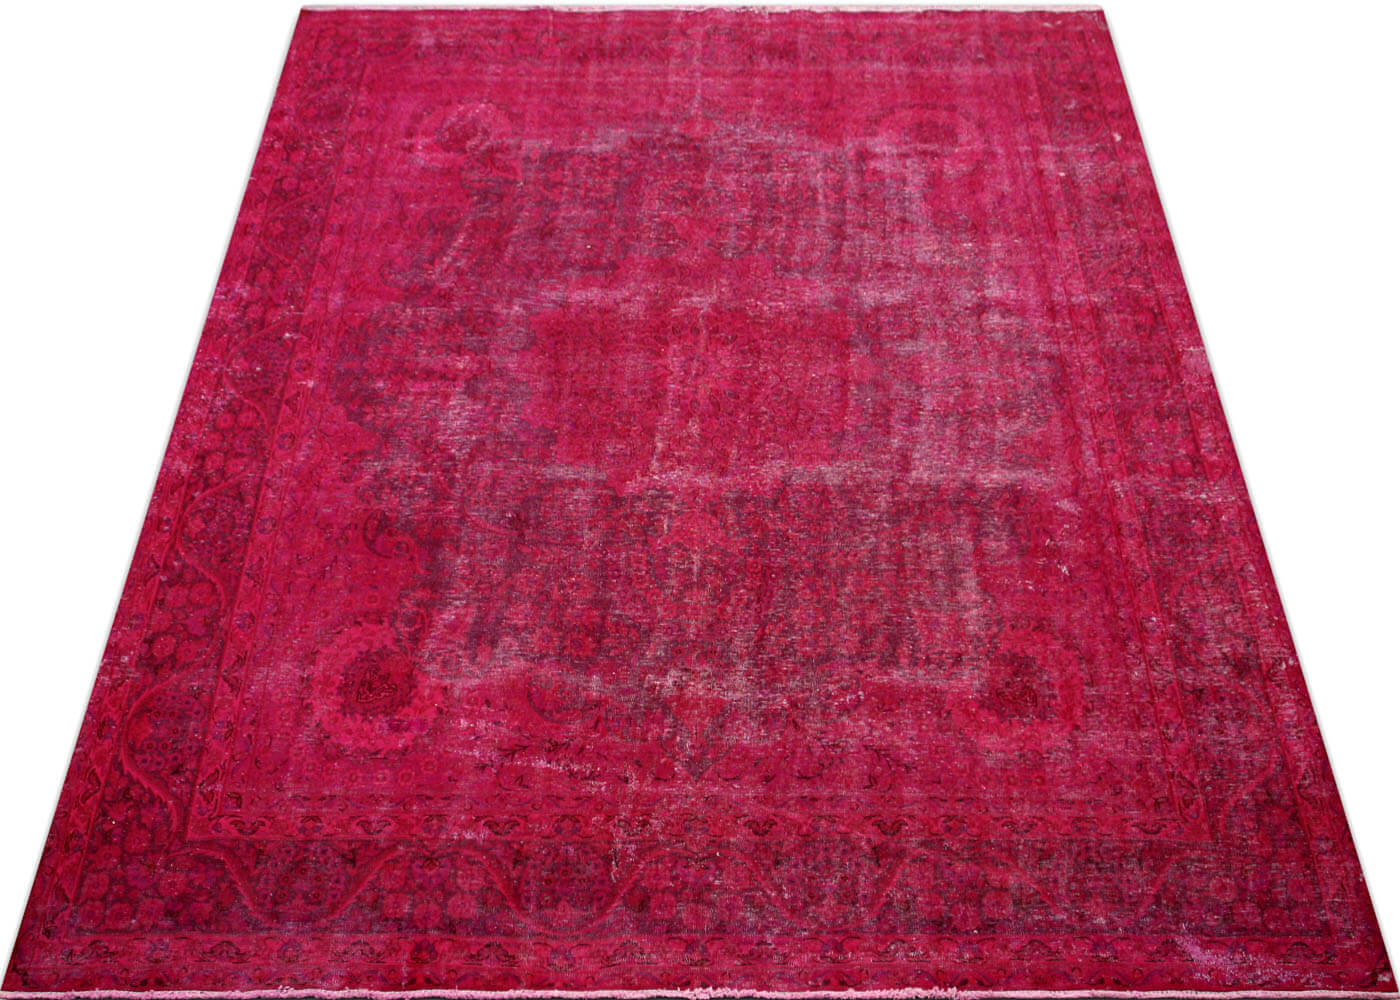 "Vintage Persian Kerman Overdyed Carpet - 9'7"" x 12'8"""